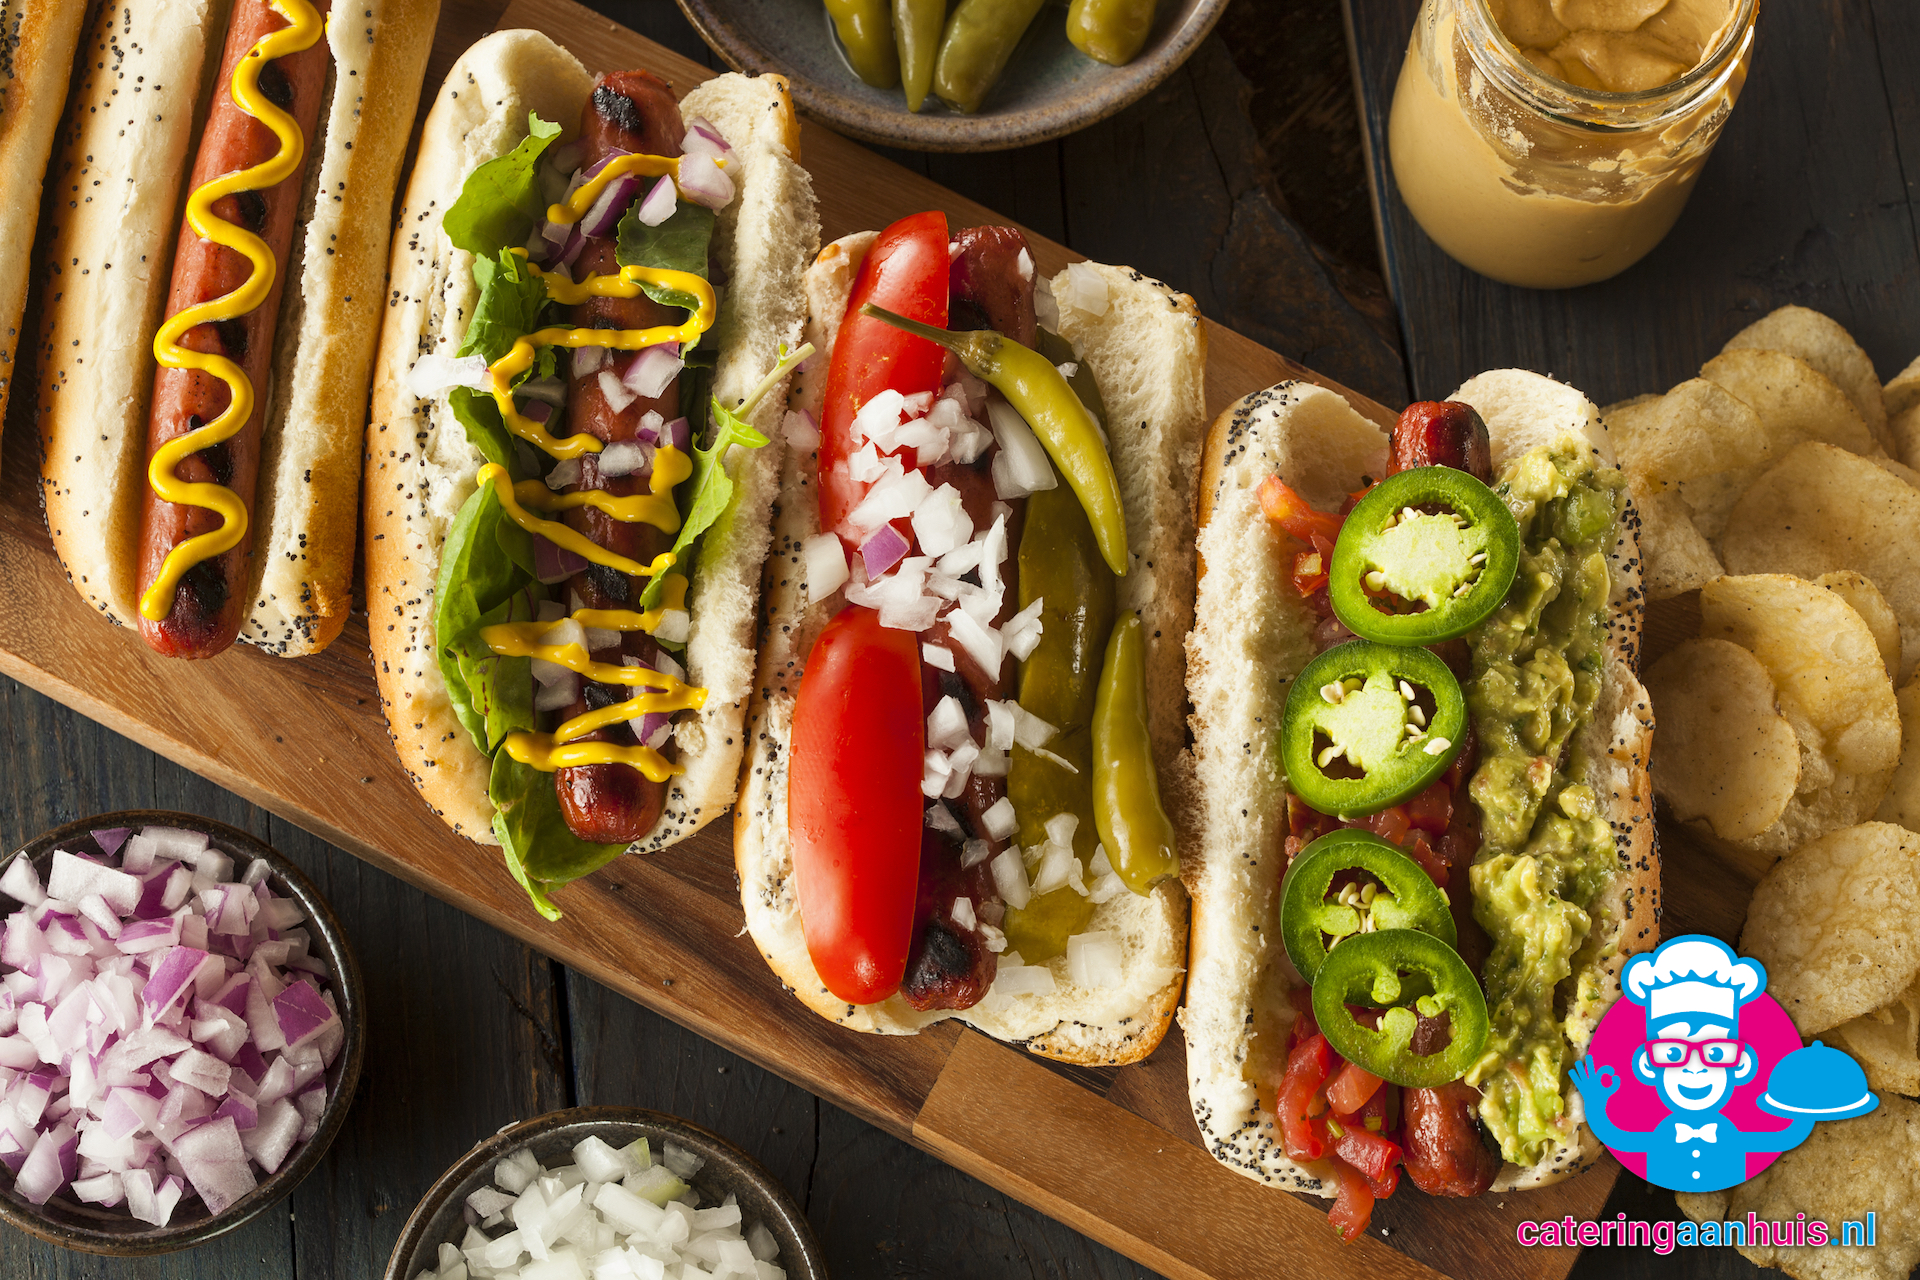 Amerikaanse Mexicaanse Barbecue | Deinums Catering